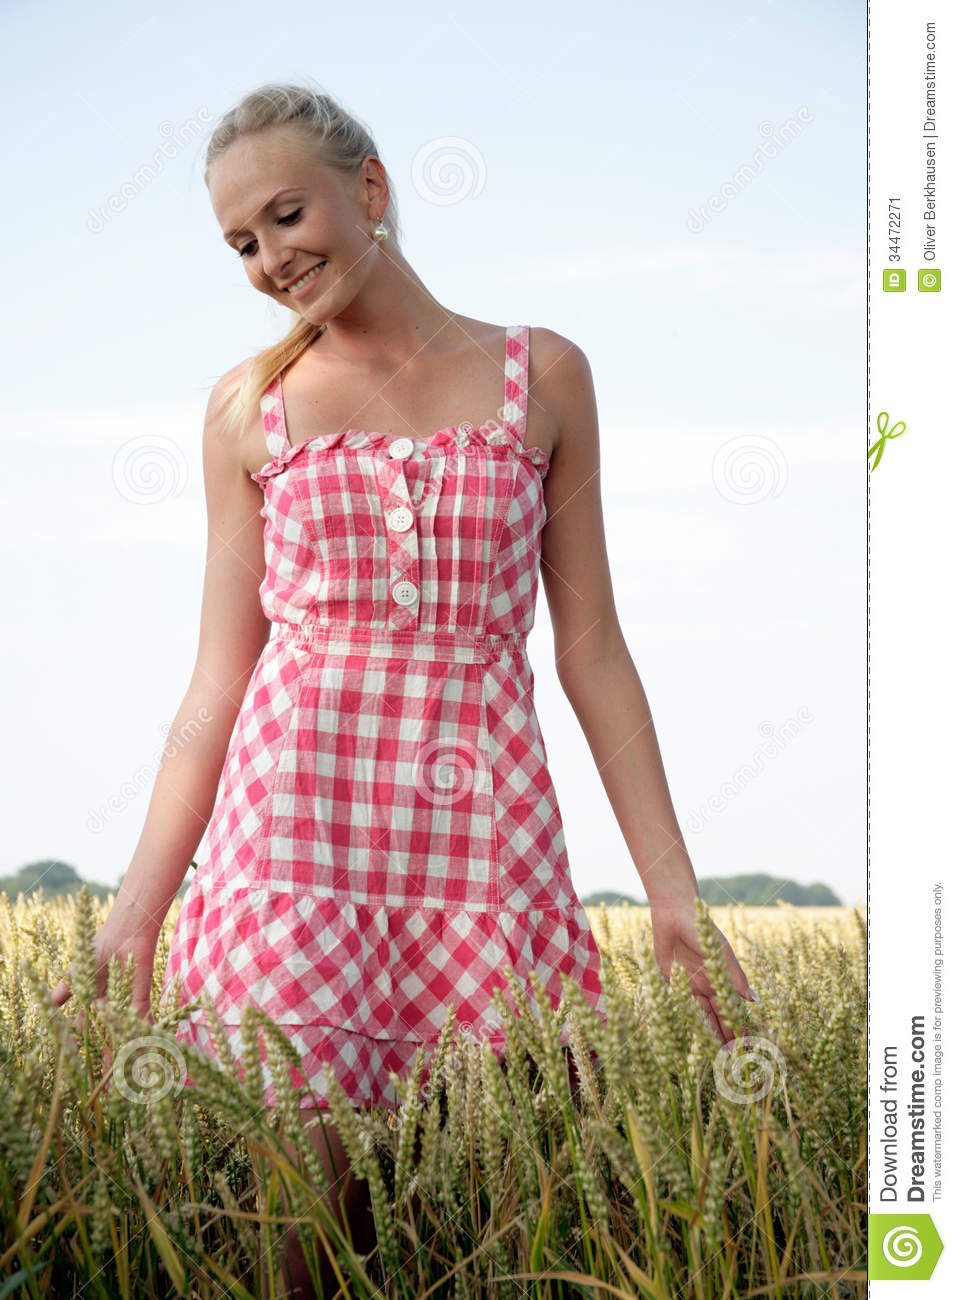 Young Woman In A Corn Field Stock Image - Image: 34472271